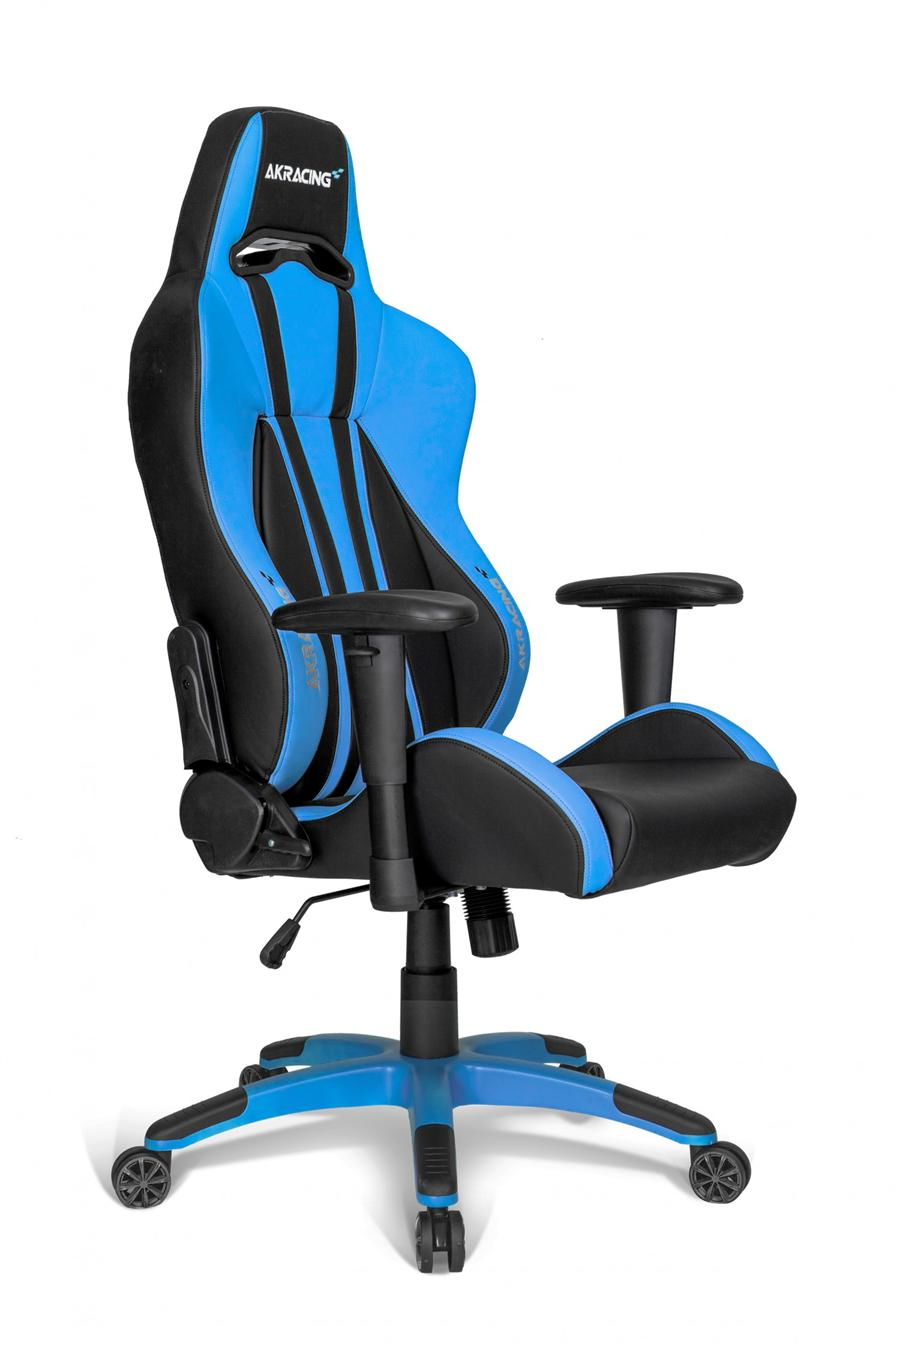 AKRACING Premium Plus Gaming Chair – Blue